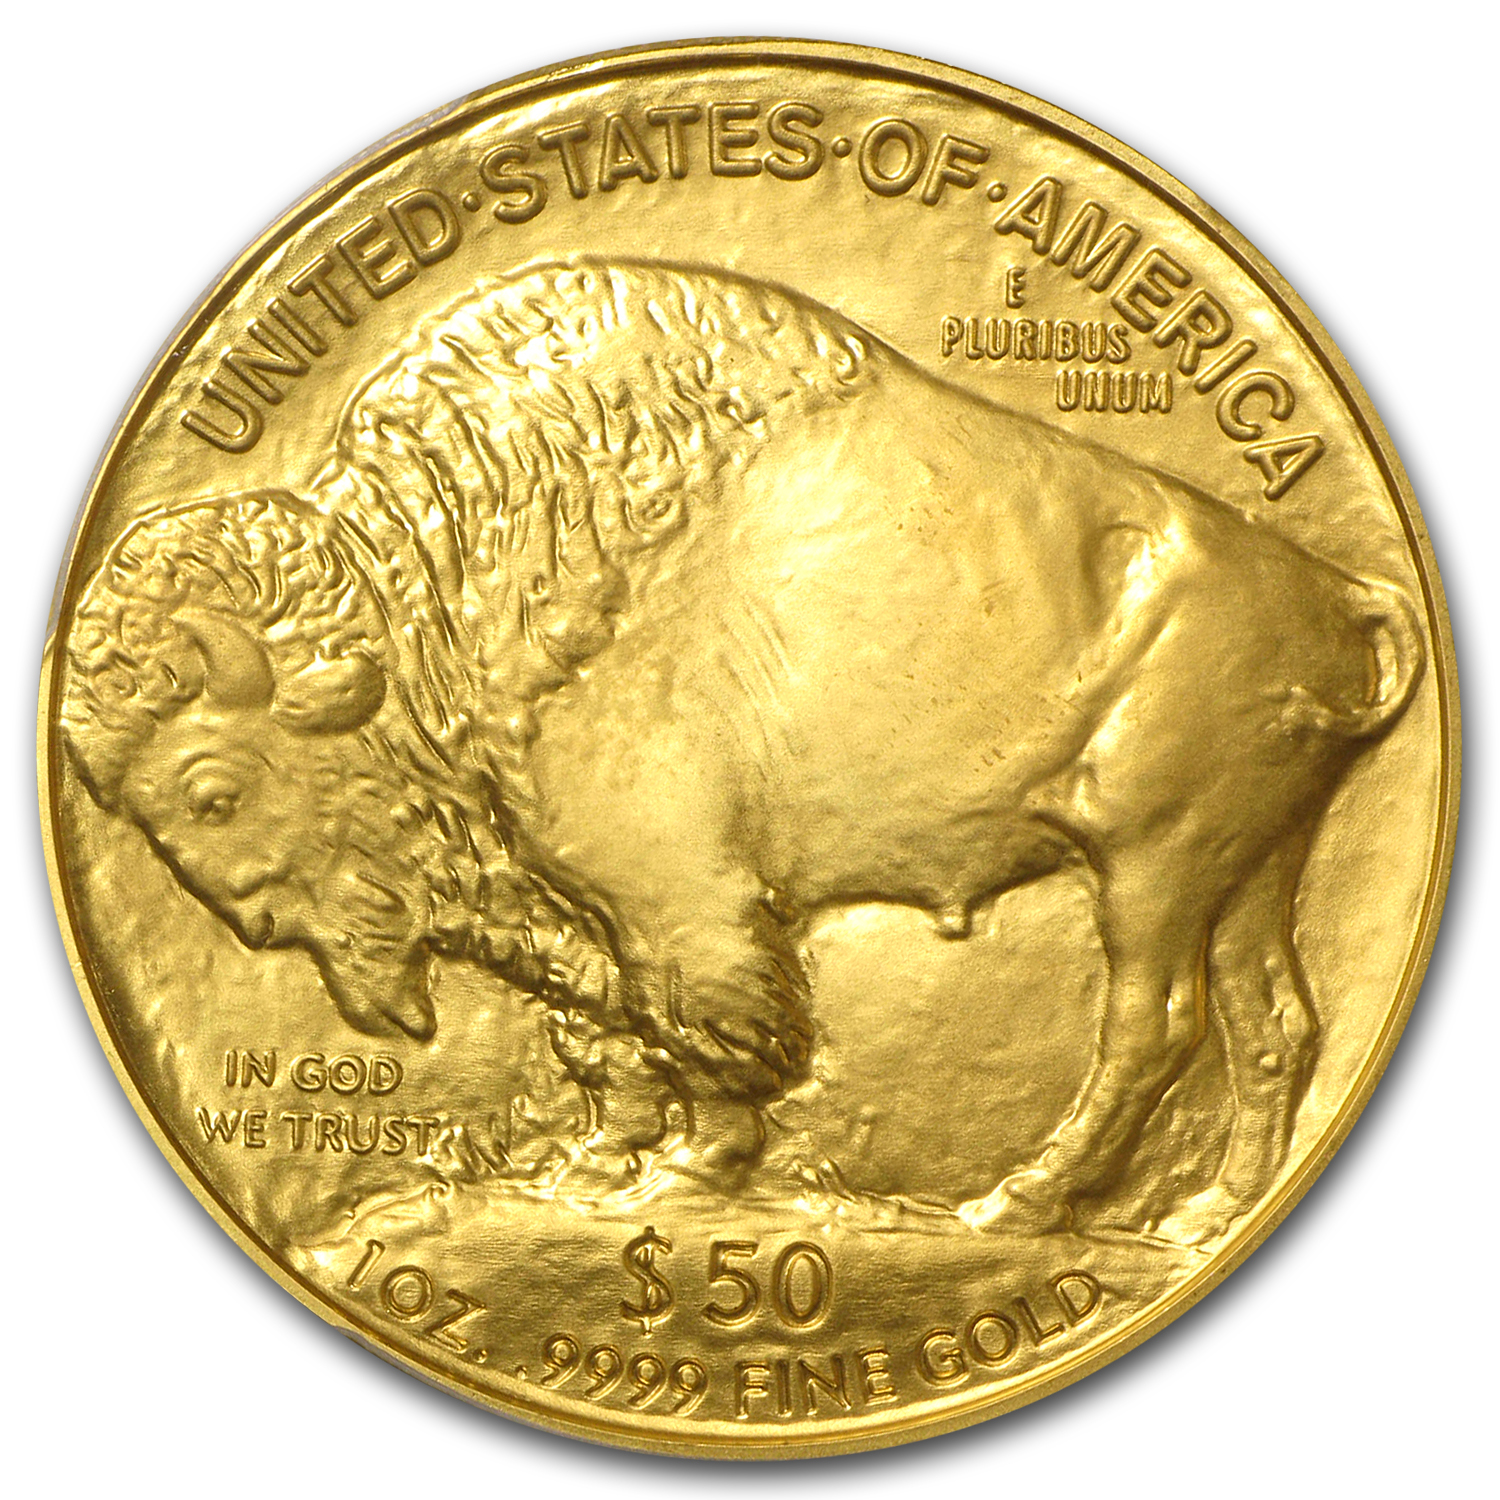 2007 1 oz Gold Buffalo MS-70 PCGS (FS, Black Diamond)